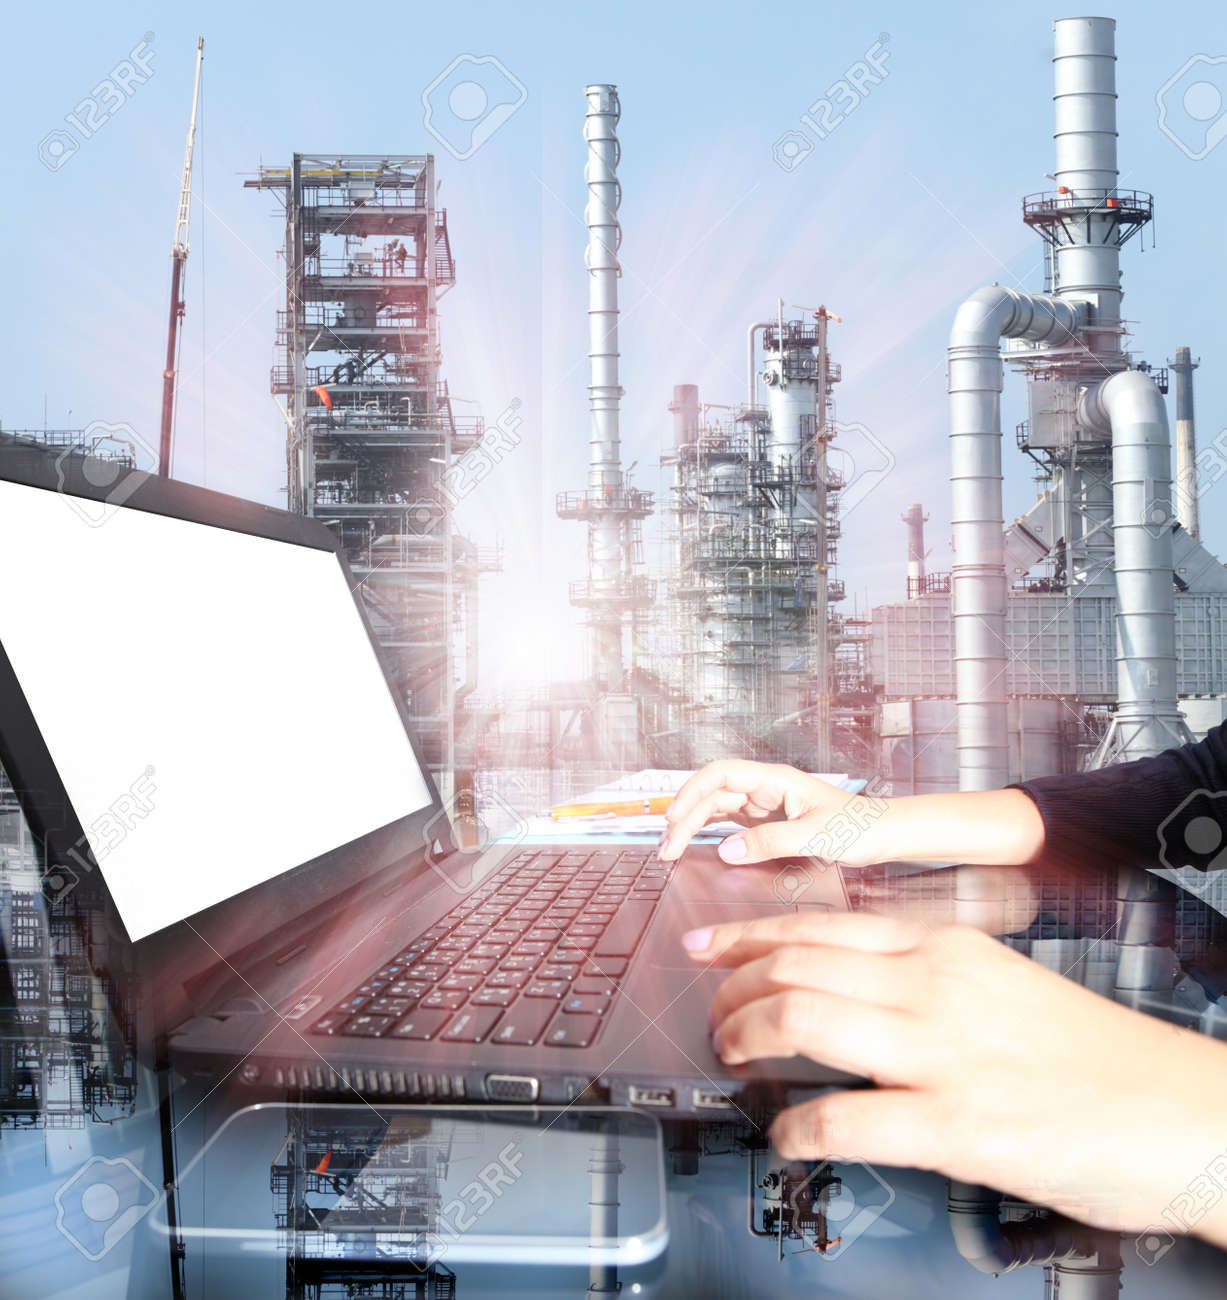 Business woman hand working on laptop computer with oil refinery industry in metallic color style use as metal style of heavy industry background - 47668734